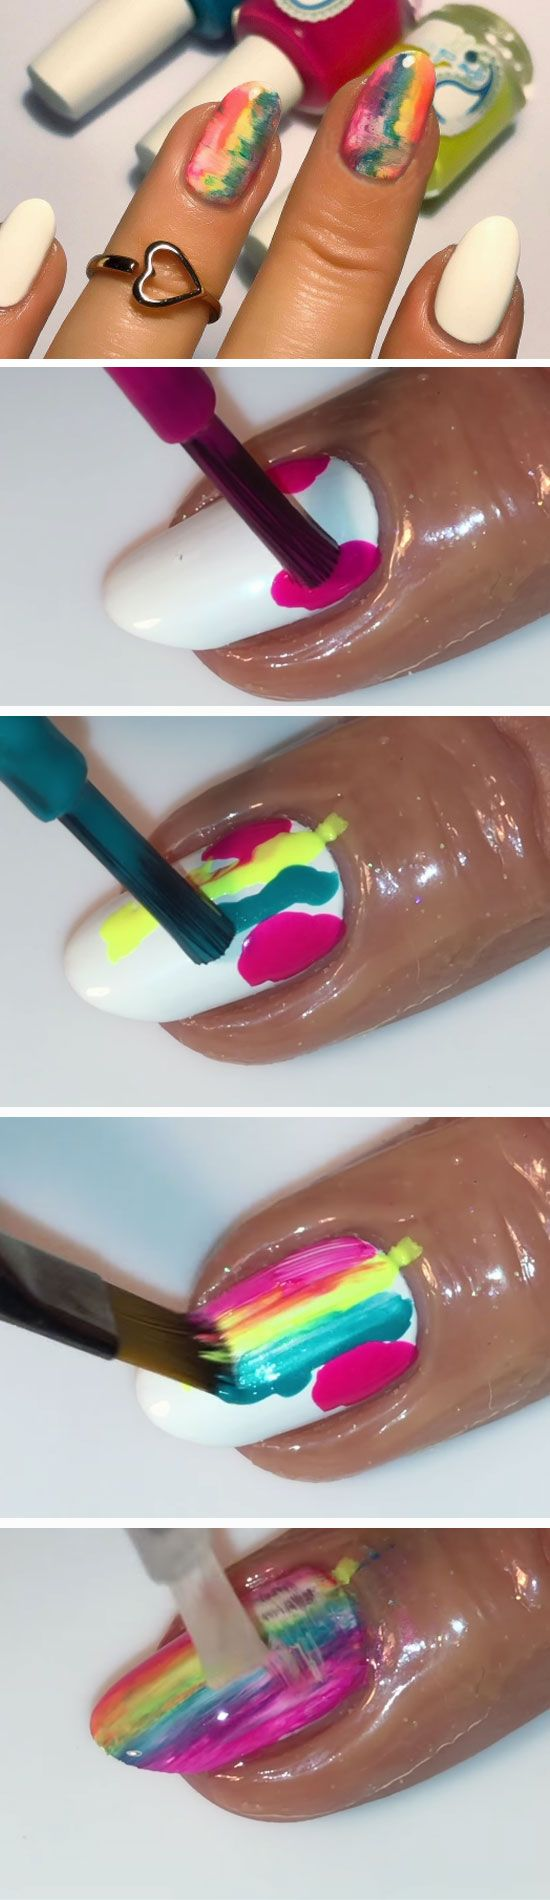 Tie Dye Hacks | Easy Spring Nail Designs for Short Nails | DIY Beach Nail Art Ideas for Teens